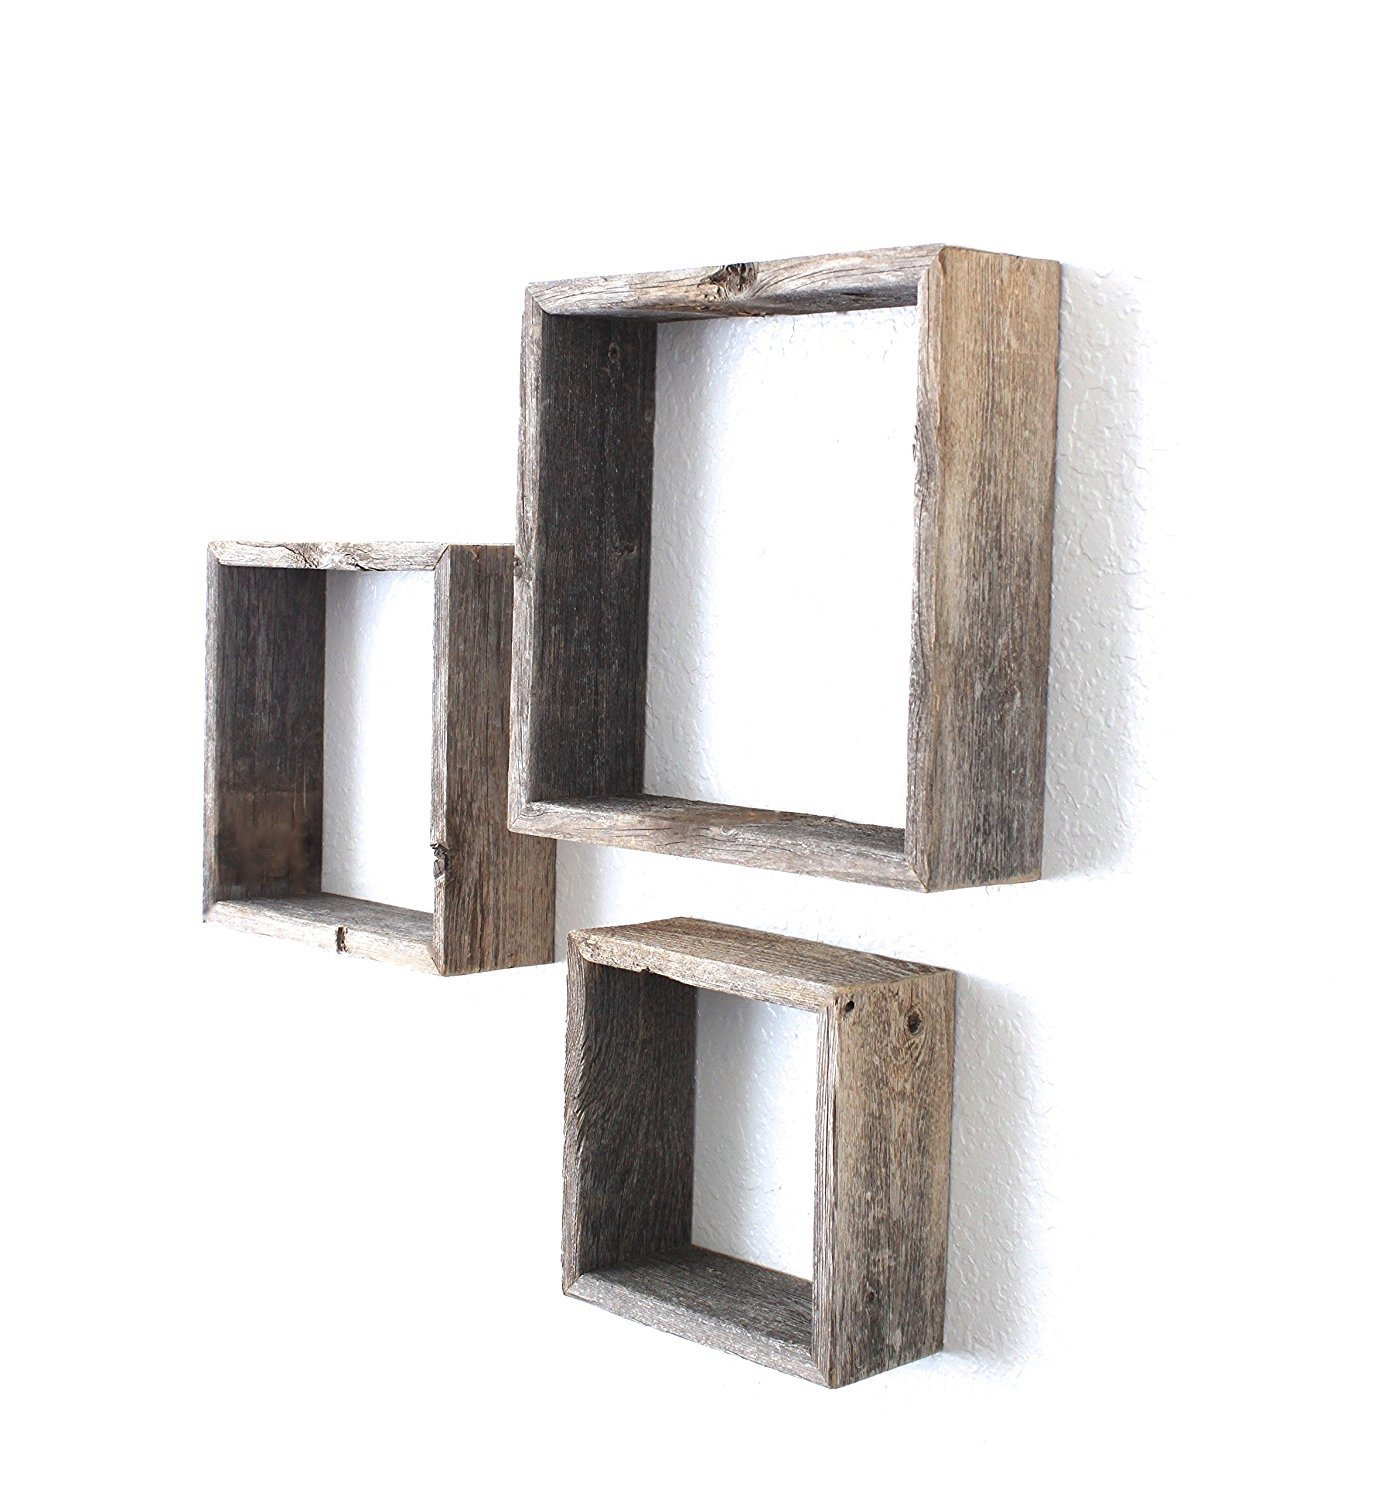 BarnwoodUSA Rustic Open Box Shelves - 100 Percent Reclaimed Wood, Weathered Gray